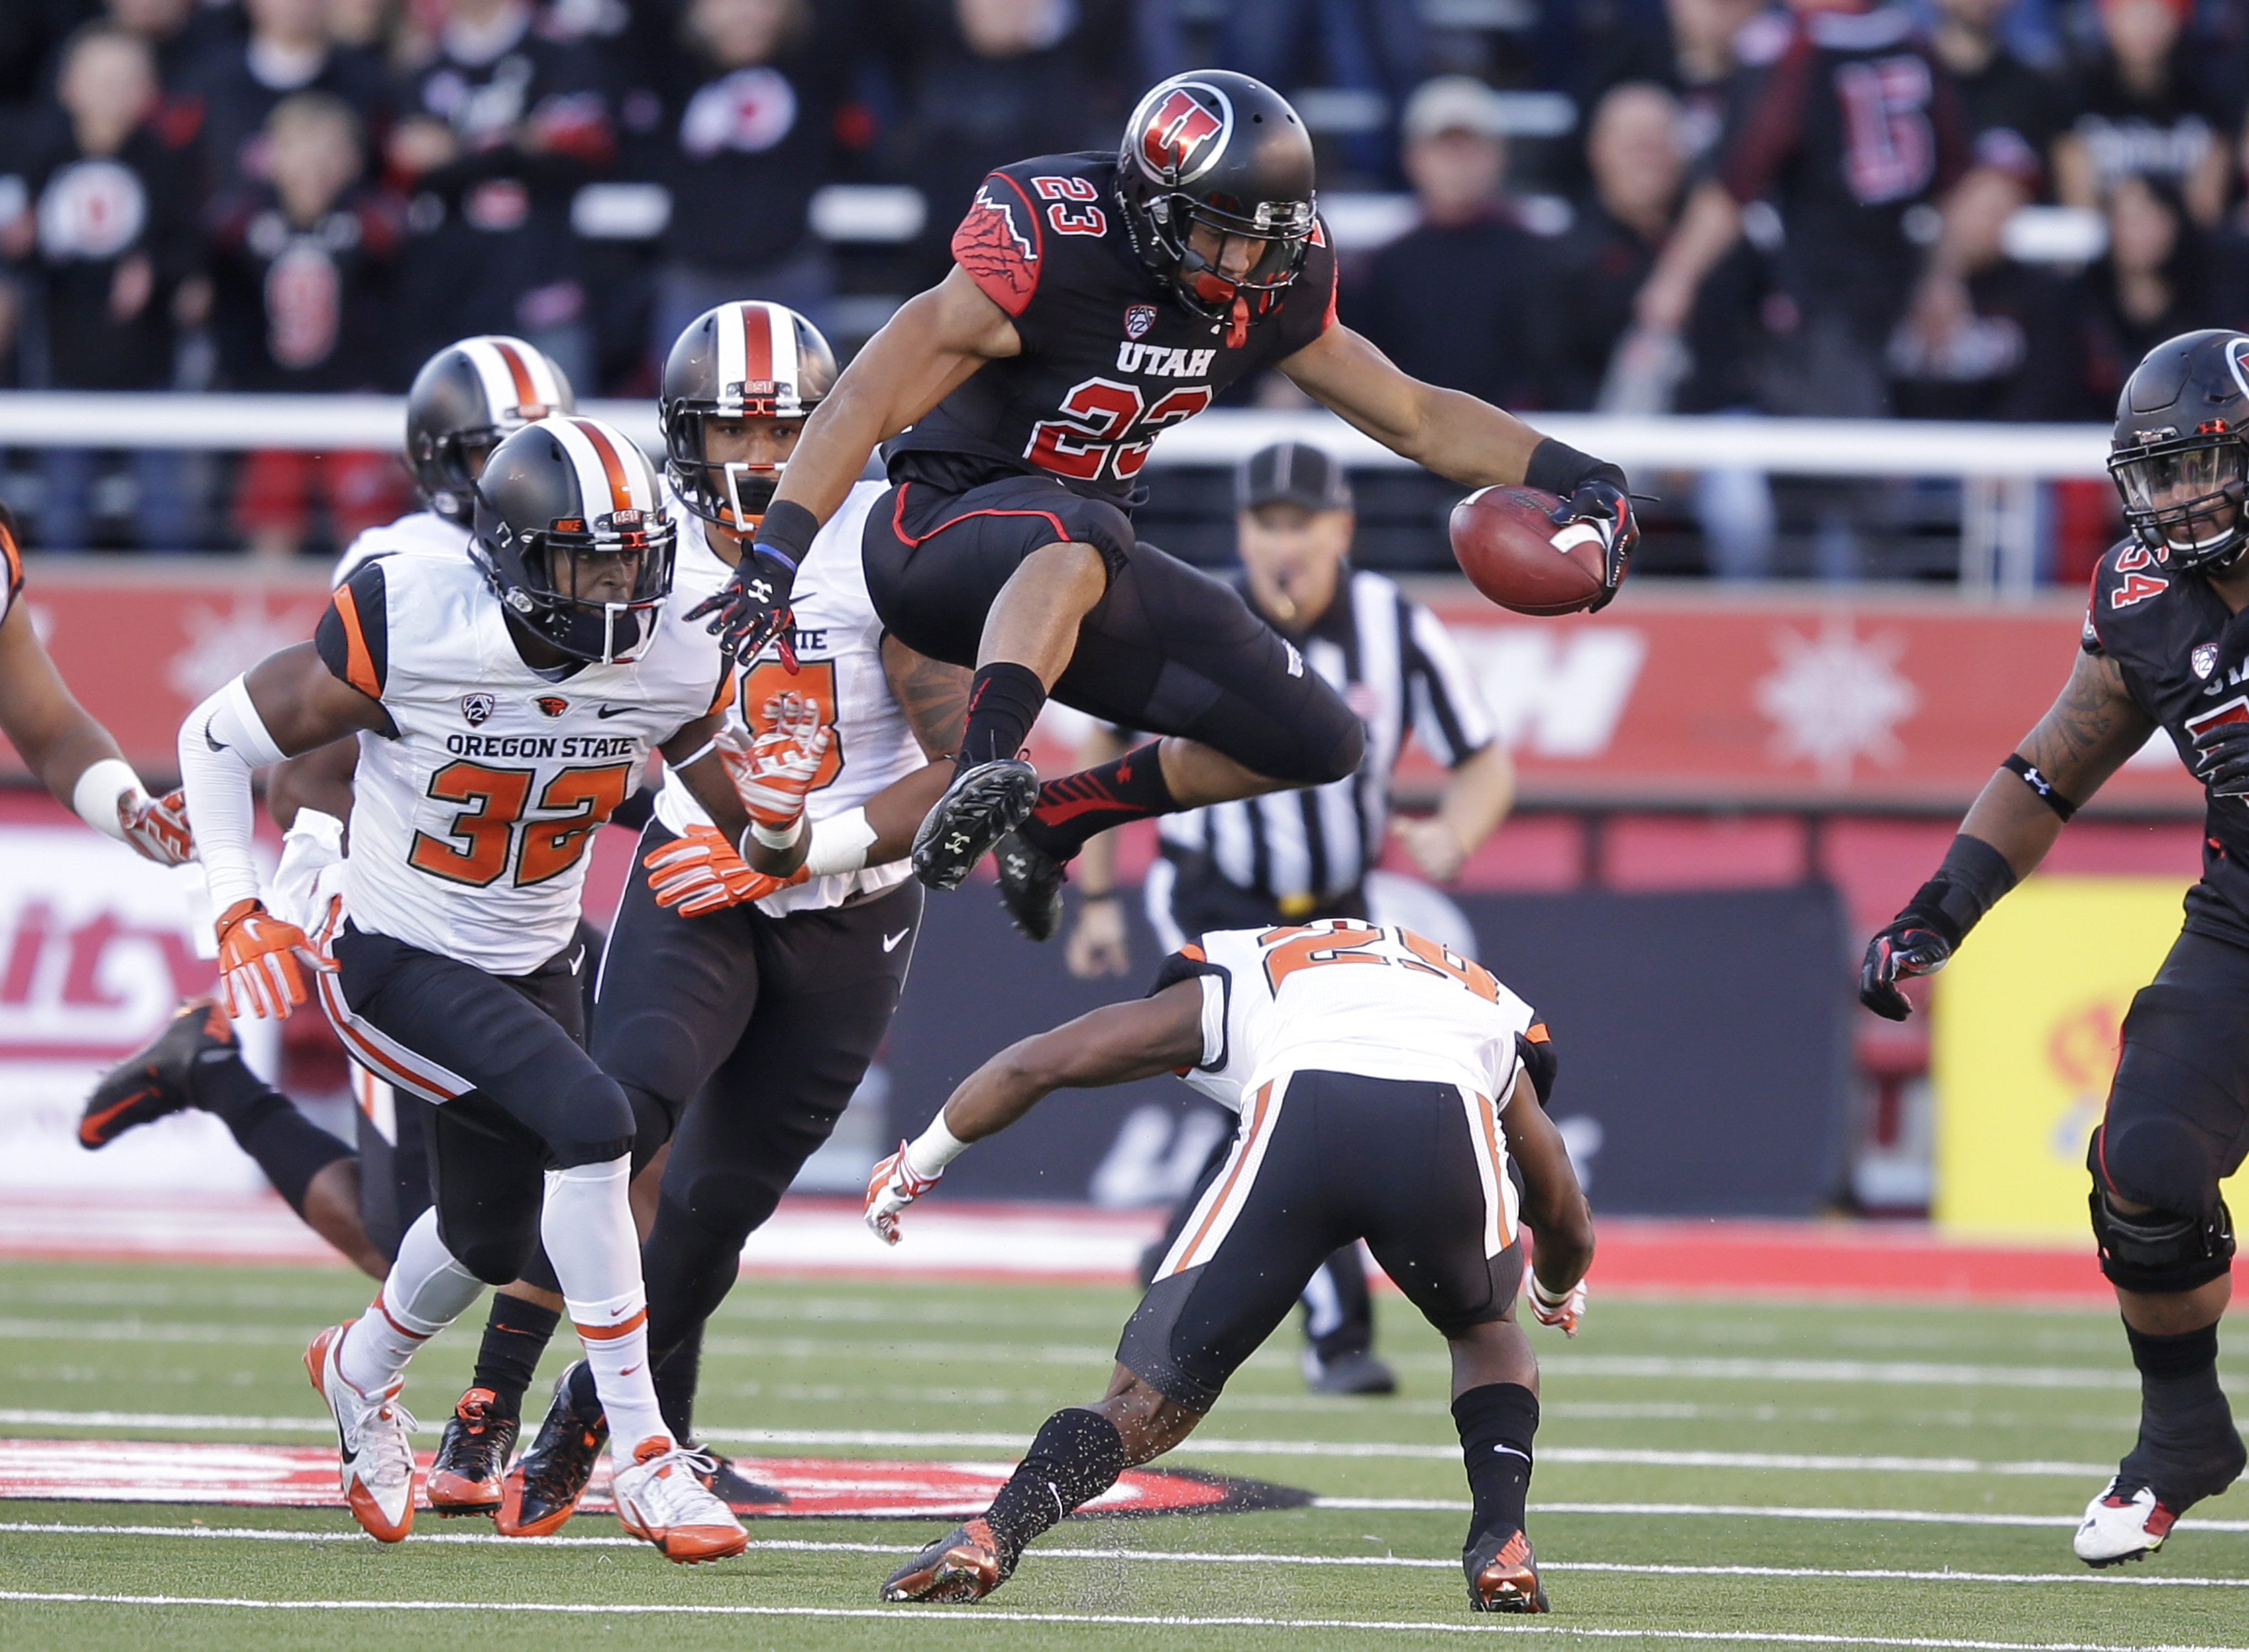 FILE - This Saturday, Oct. 31, 2015, file photo, shows Utah running back Devontae Booker (23) leaping over Oregon State cornerback Dwayne Williams (29) as teammate linebacker Jonathan Willis (32) pursues in the first quarter during an NCAA college footbal